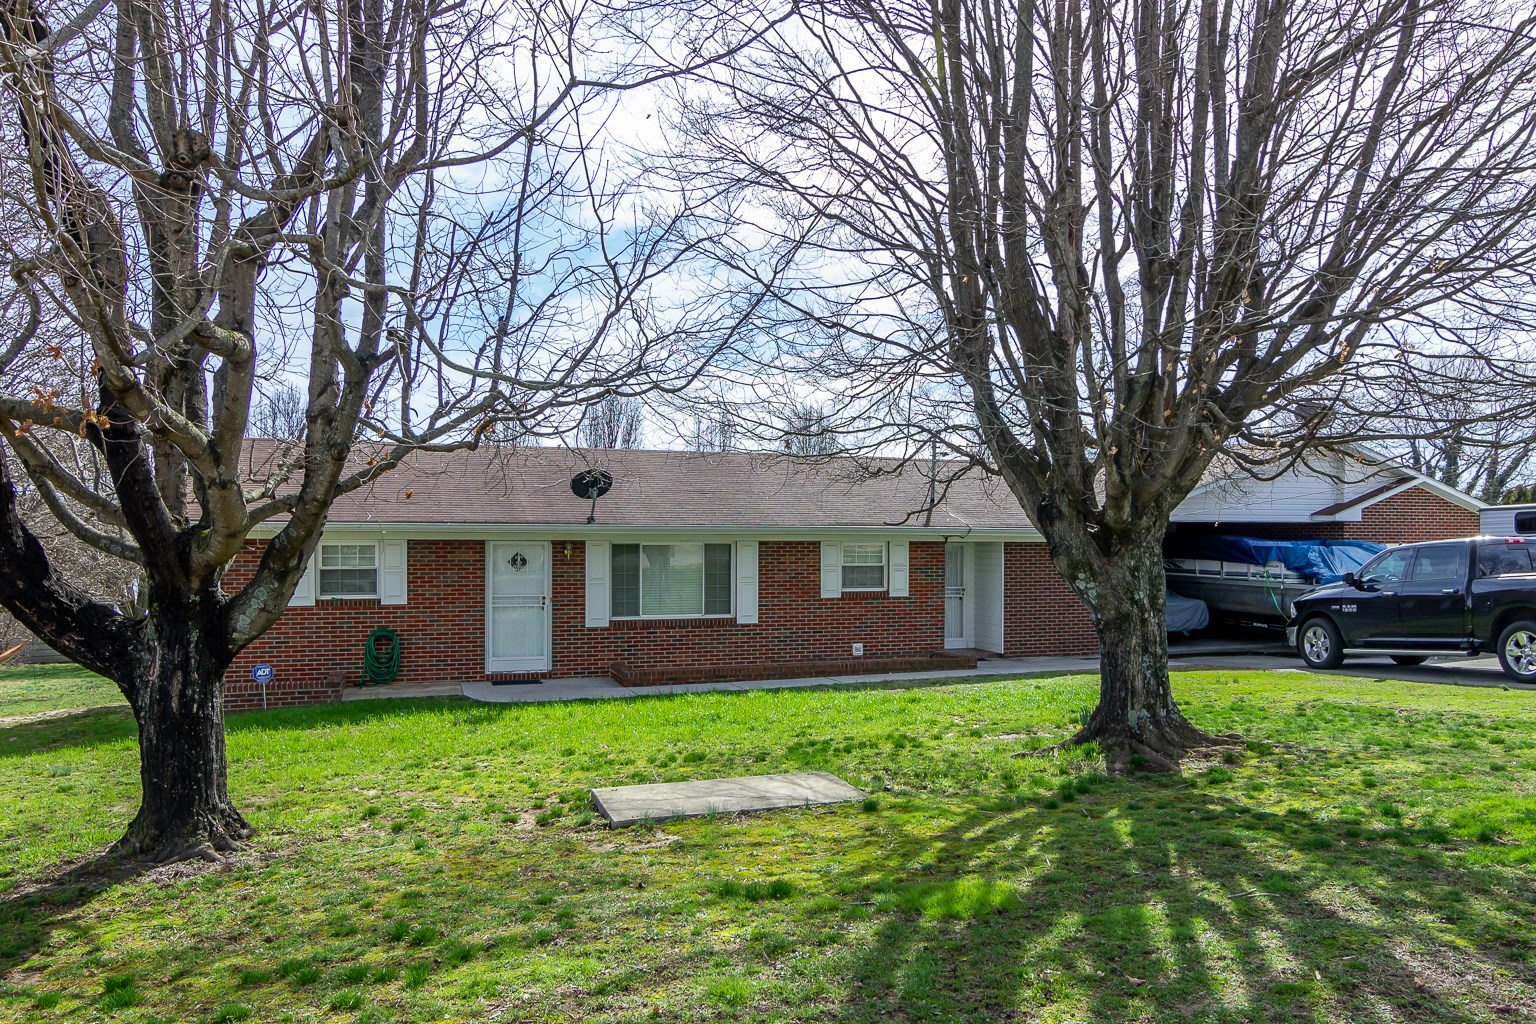 3 BR, 2 BA full, brick home in Hamblen County, TN